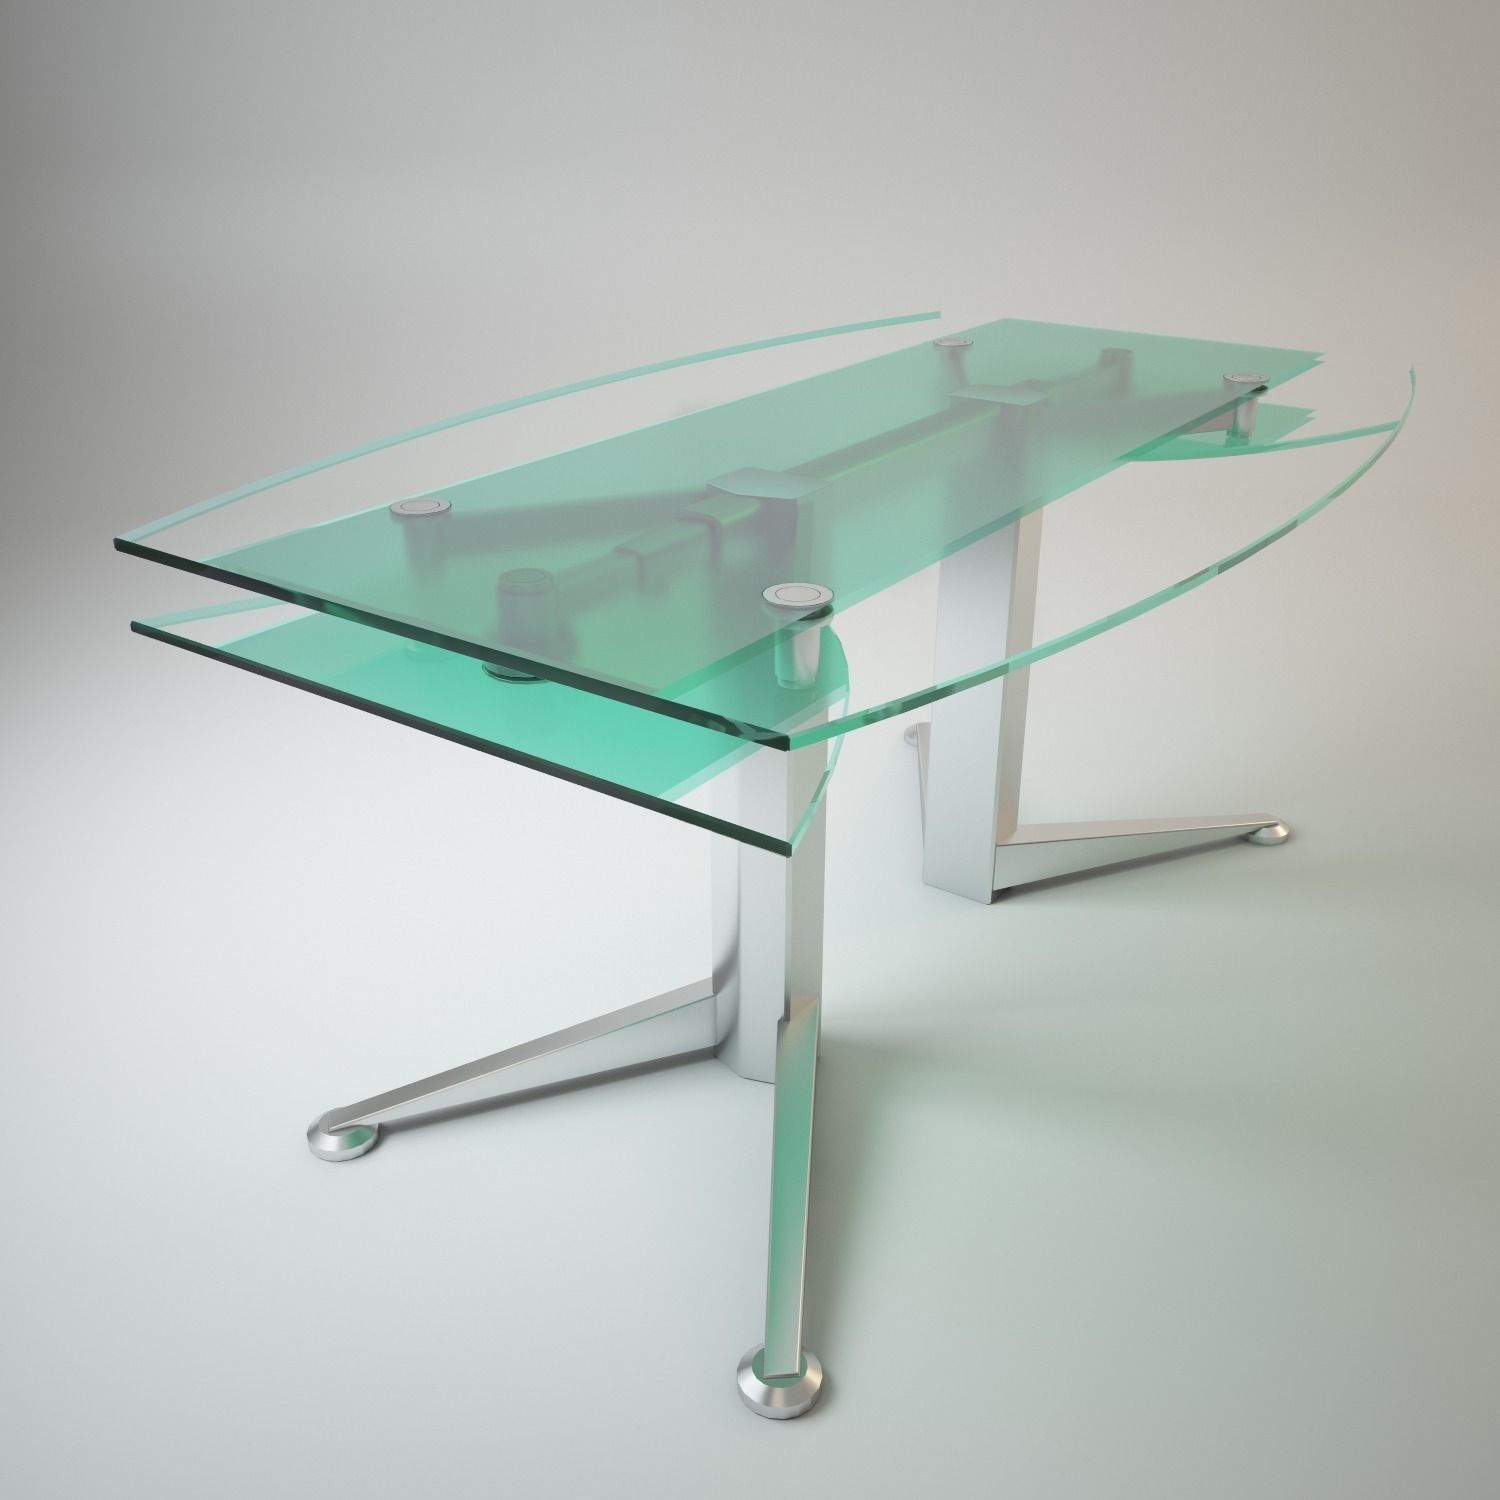 3d Folding Glass Table Spectrum Cgtrader